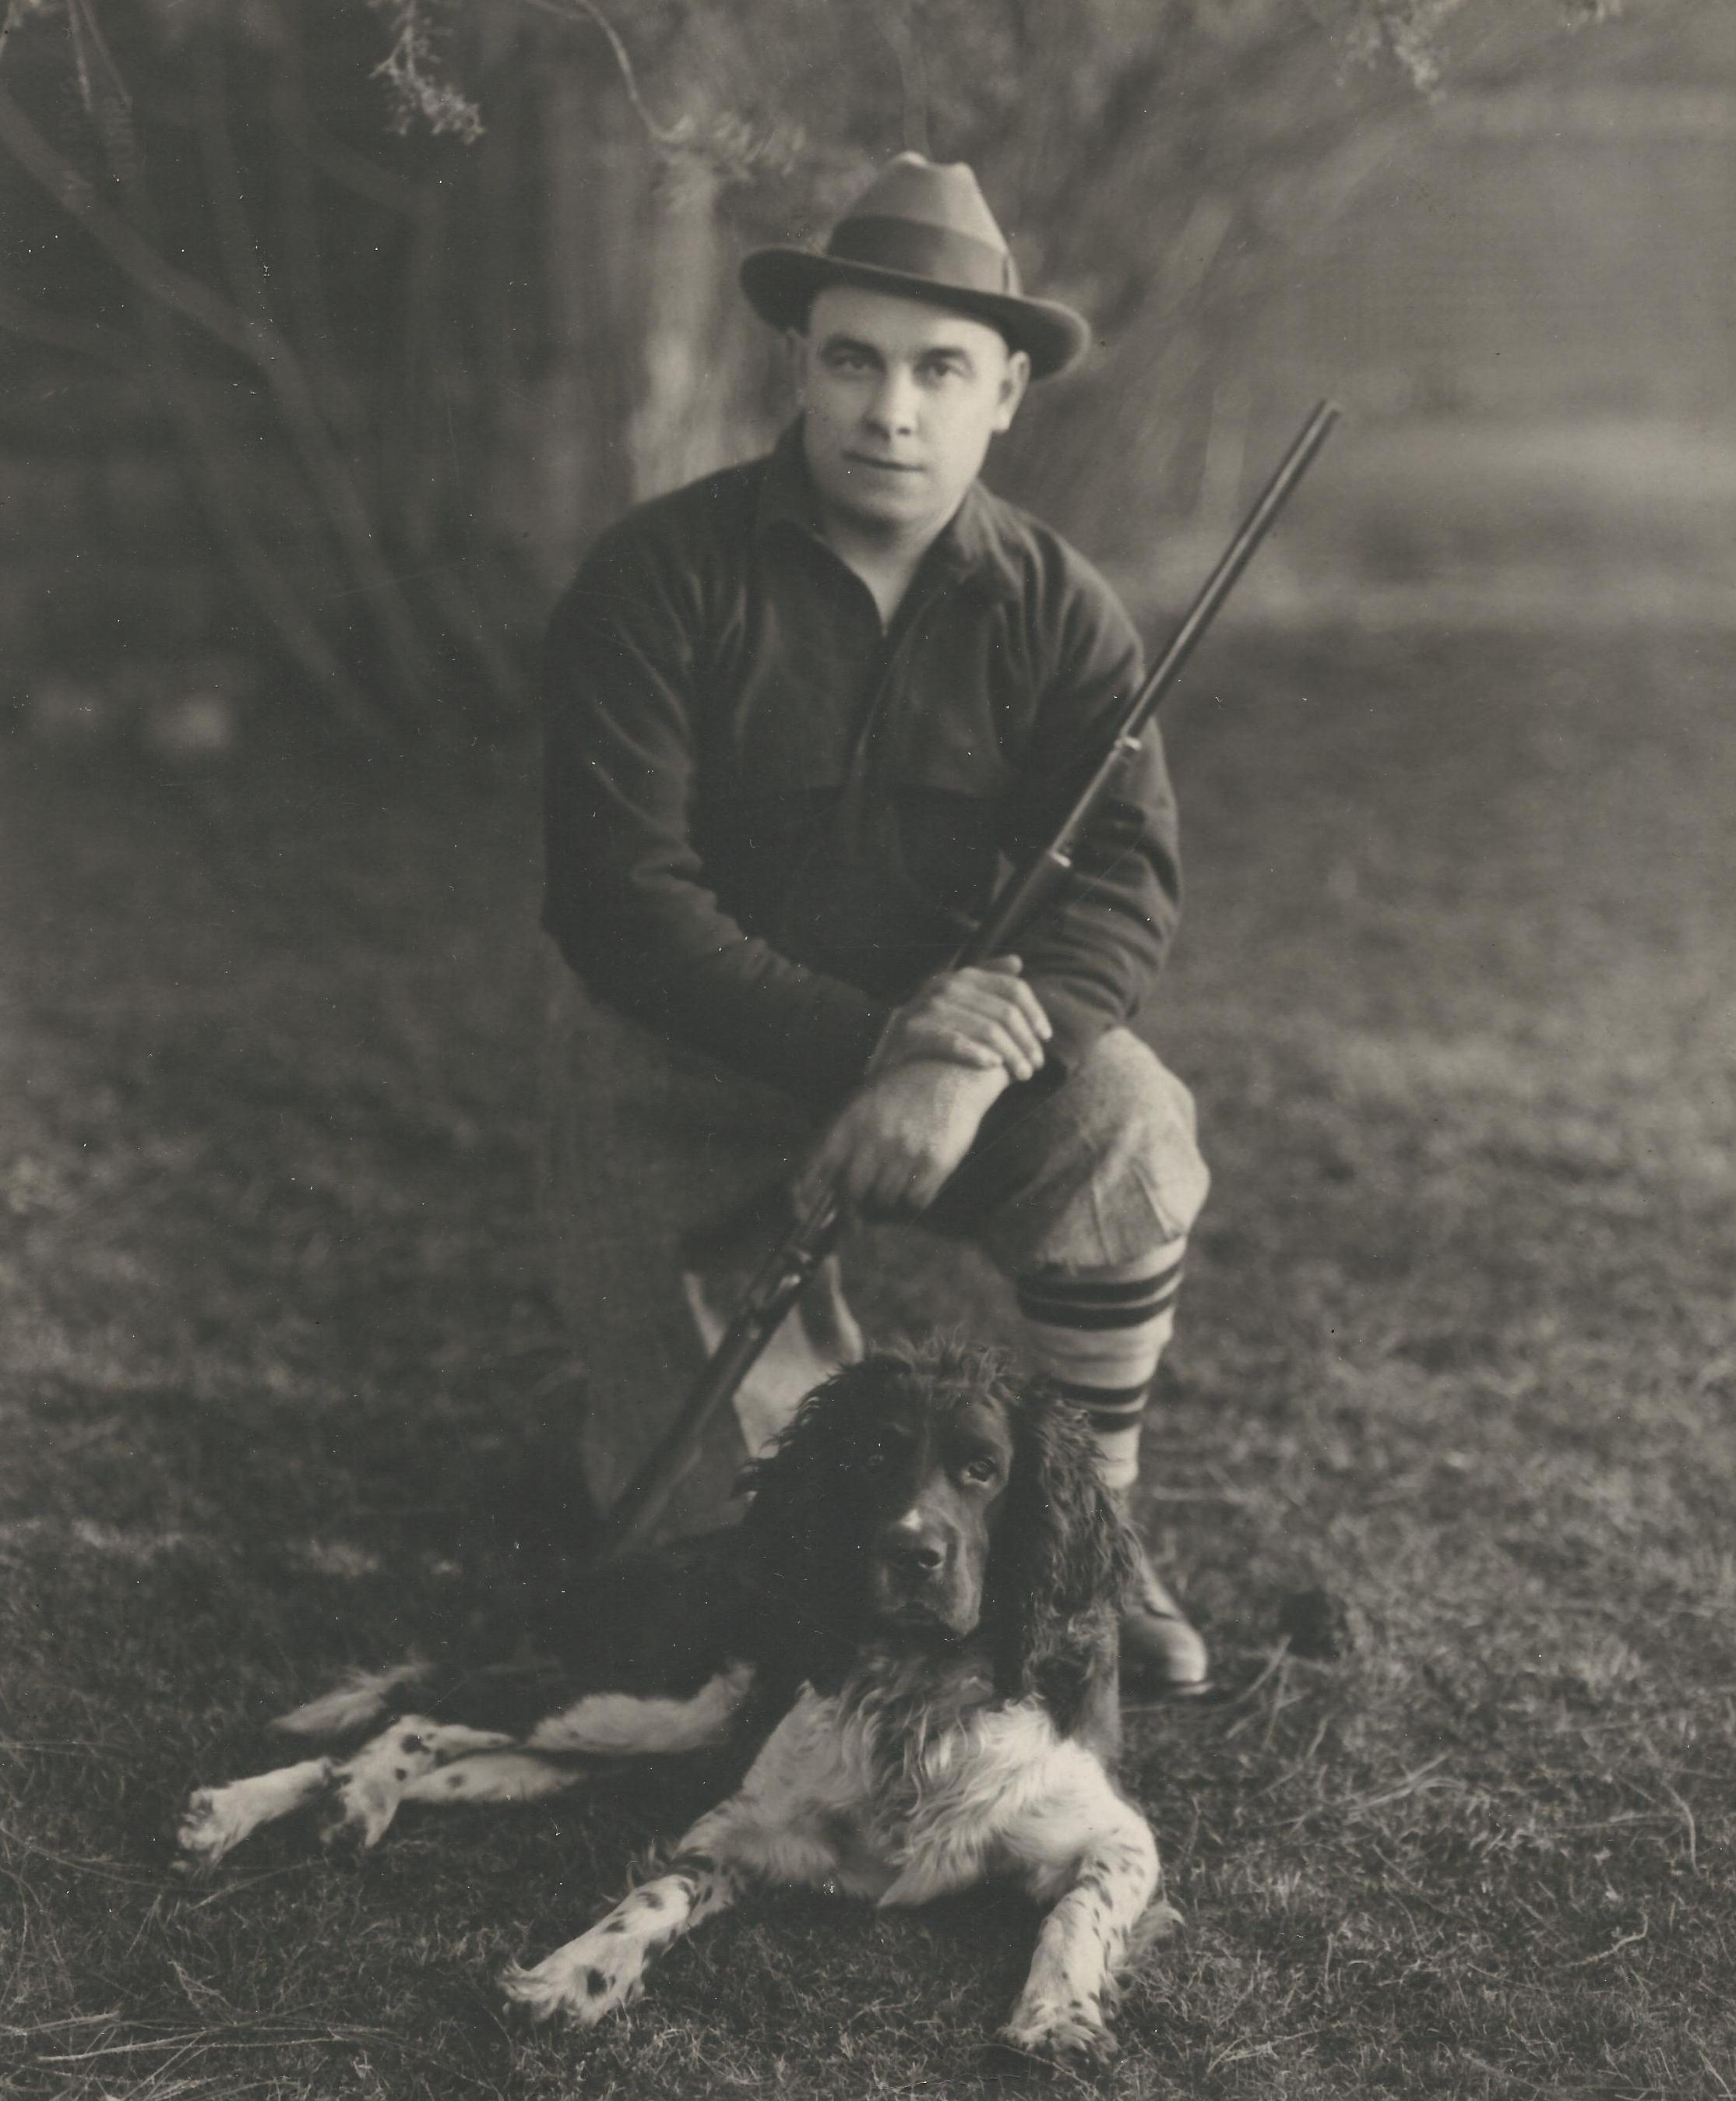 Clint with Gun and Dog